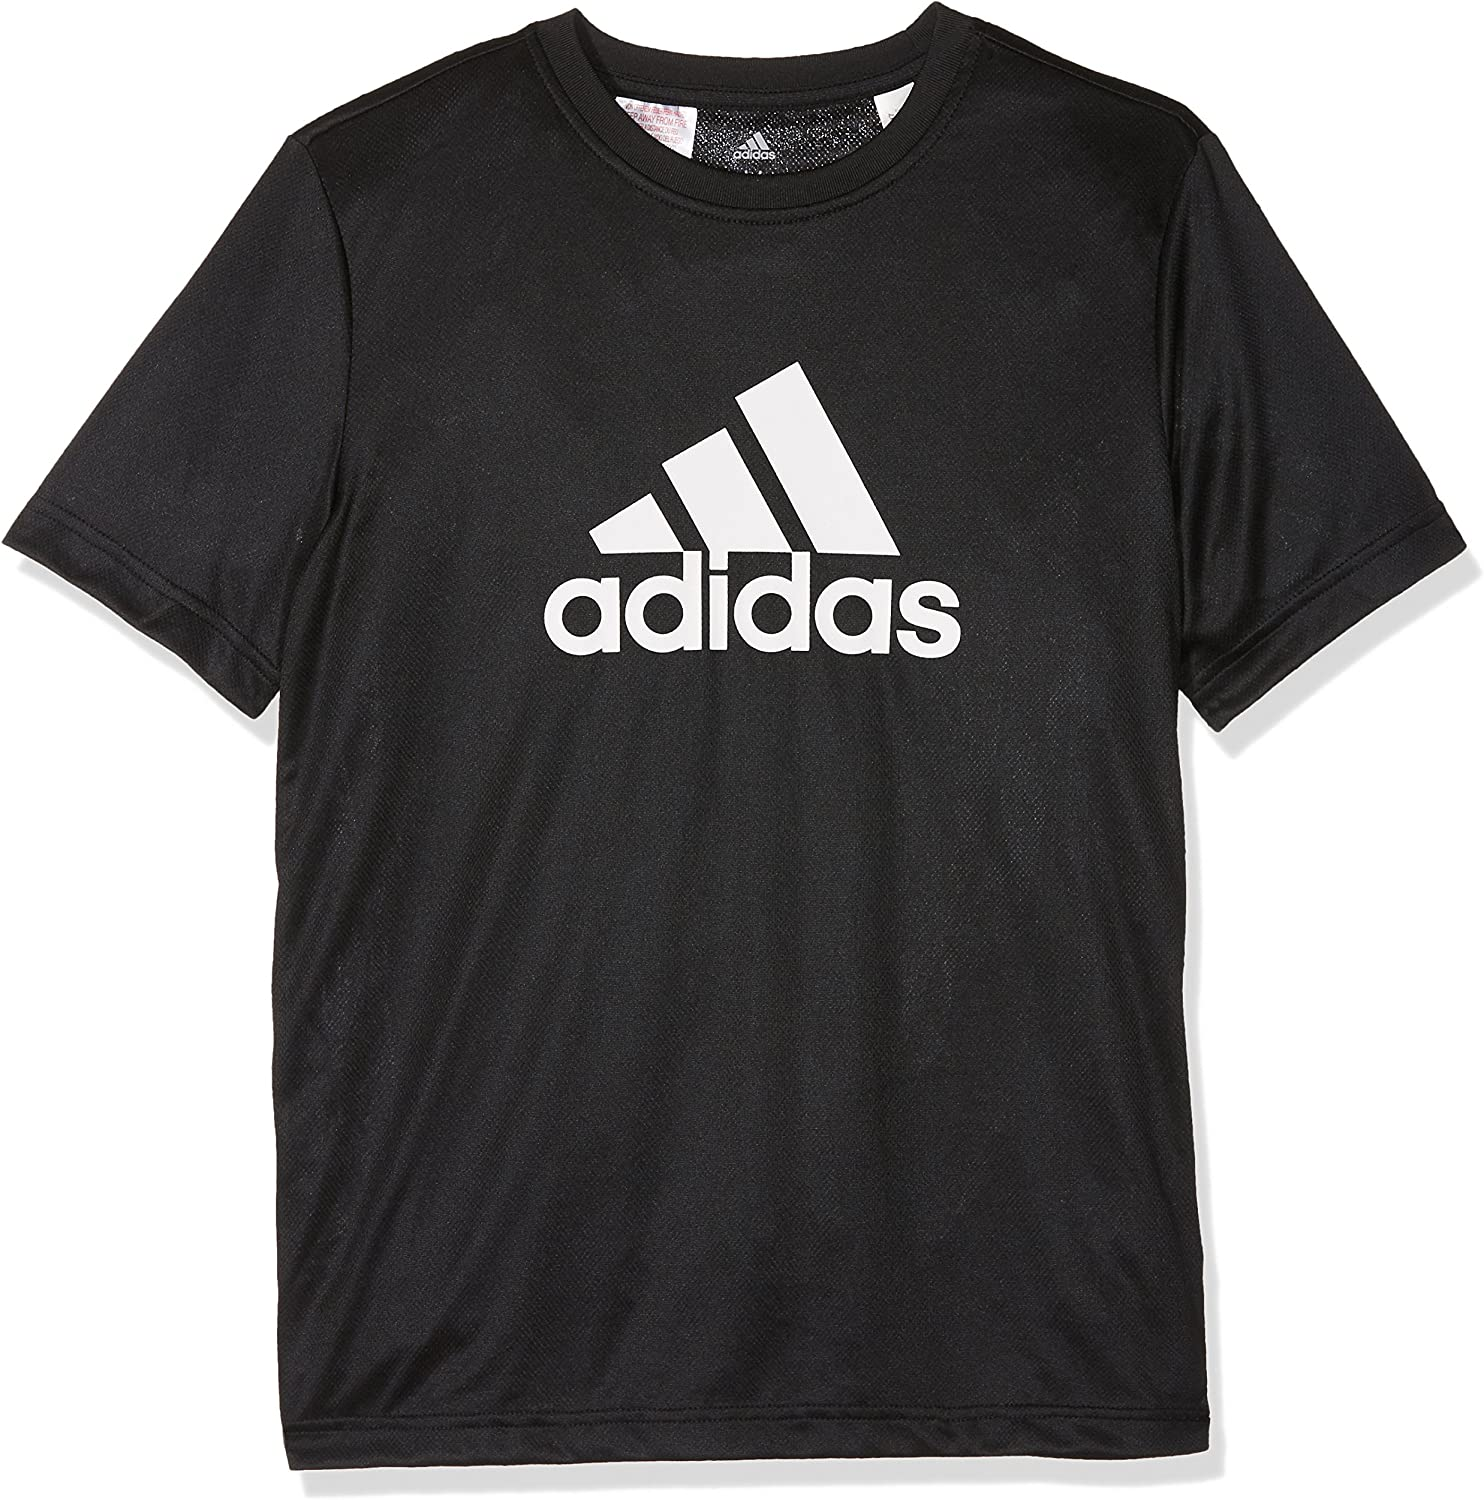 adidas Jungen Gear Up T-Shirt